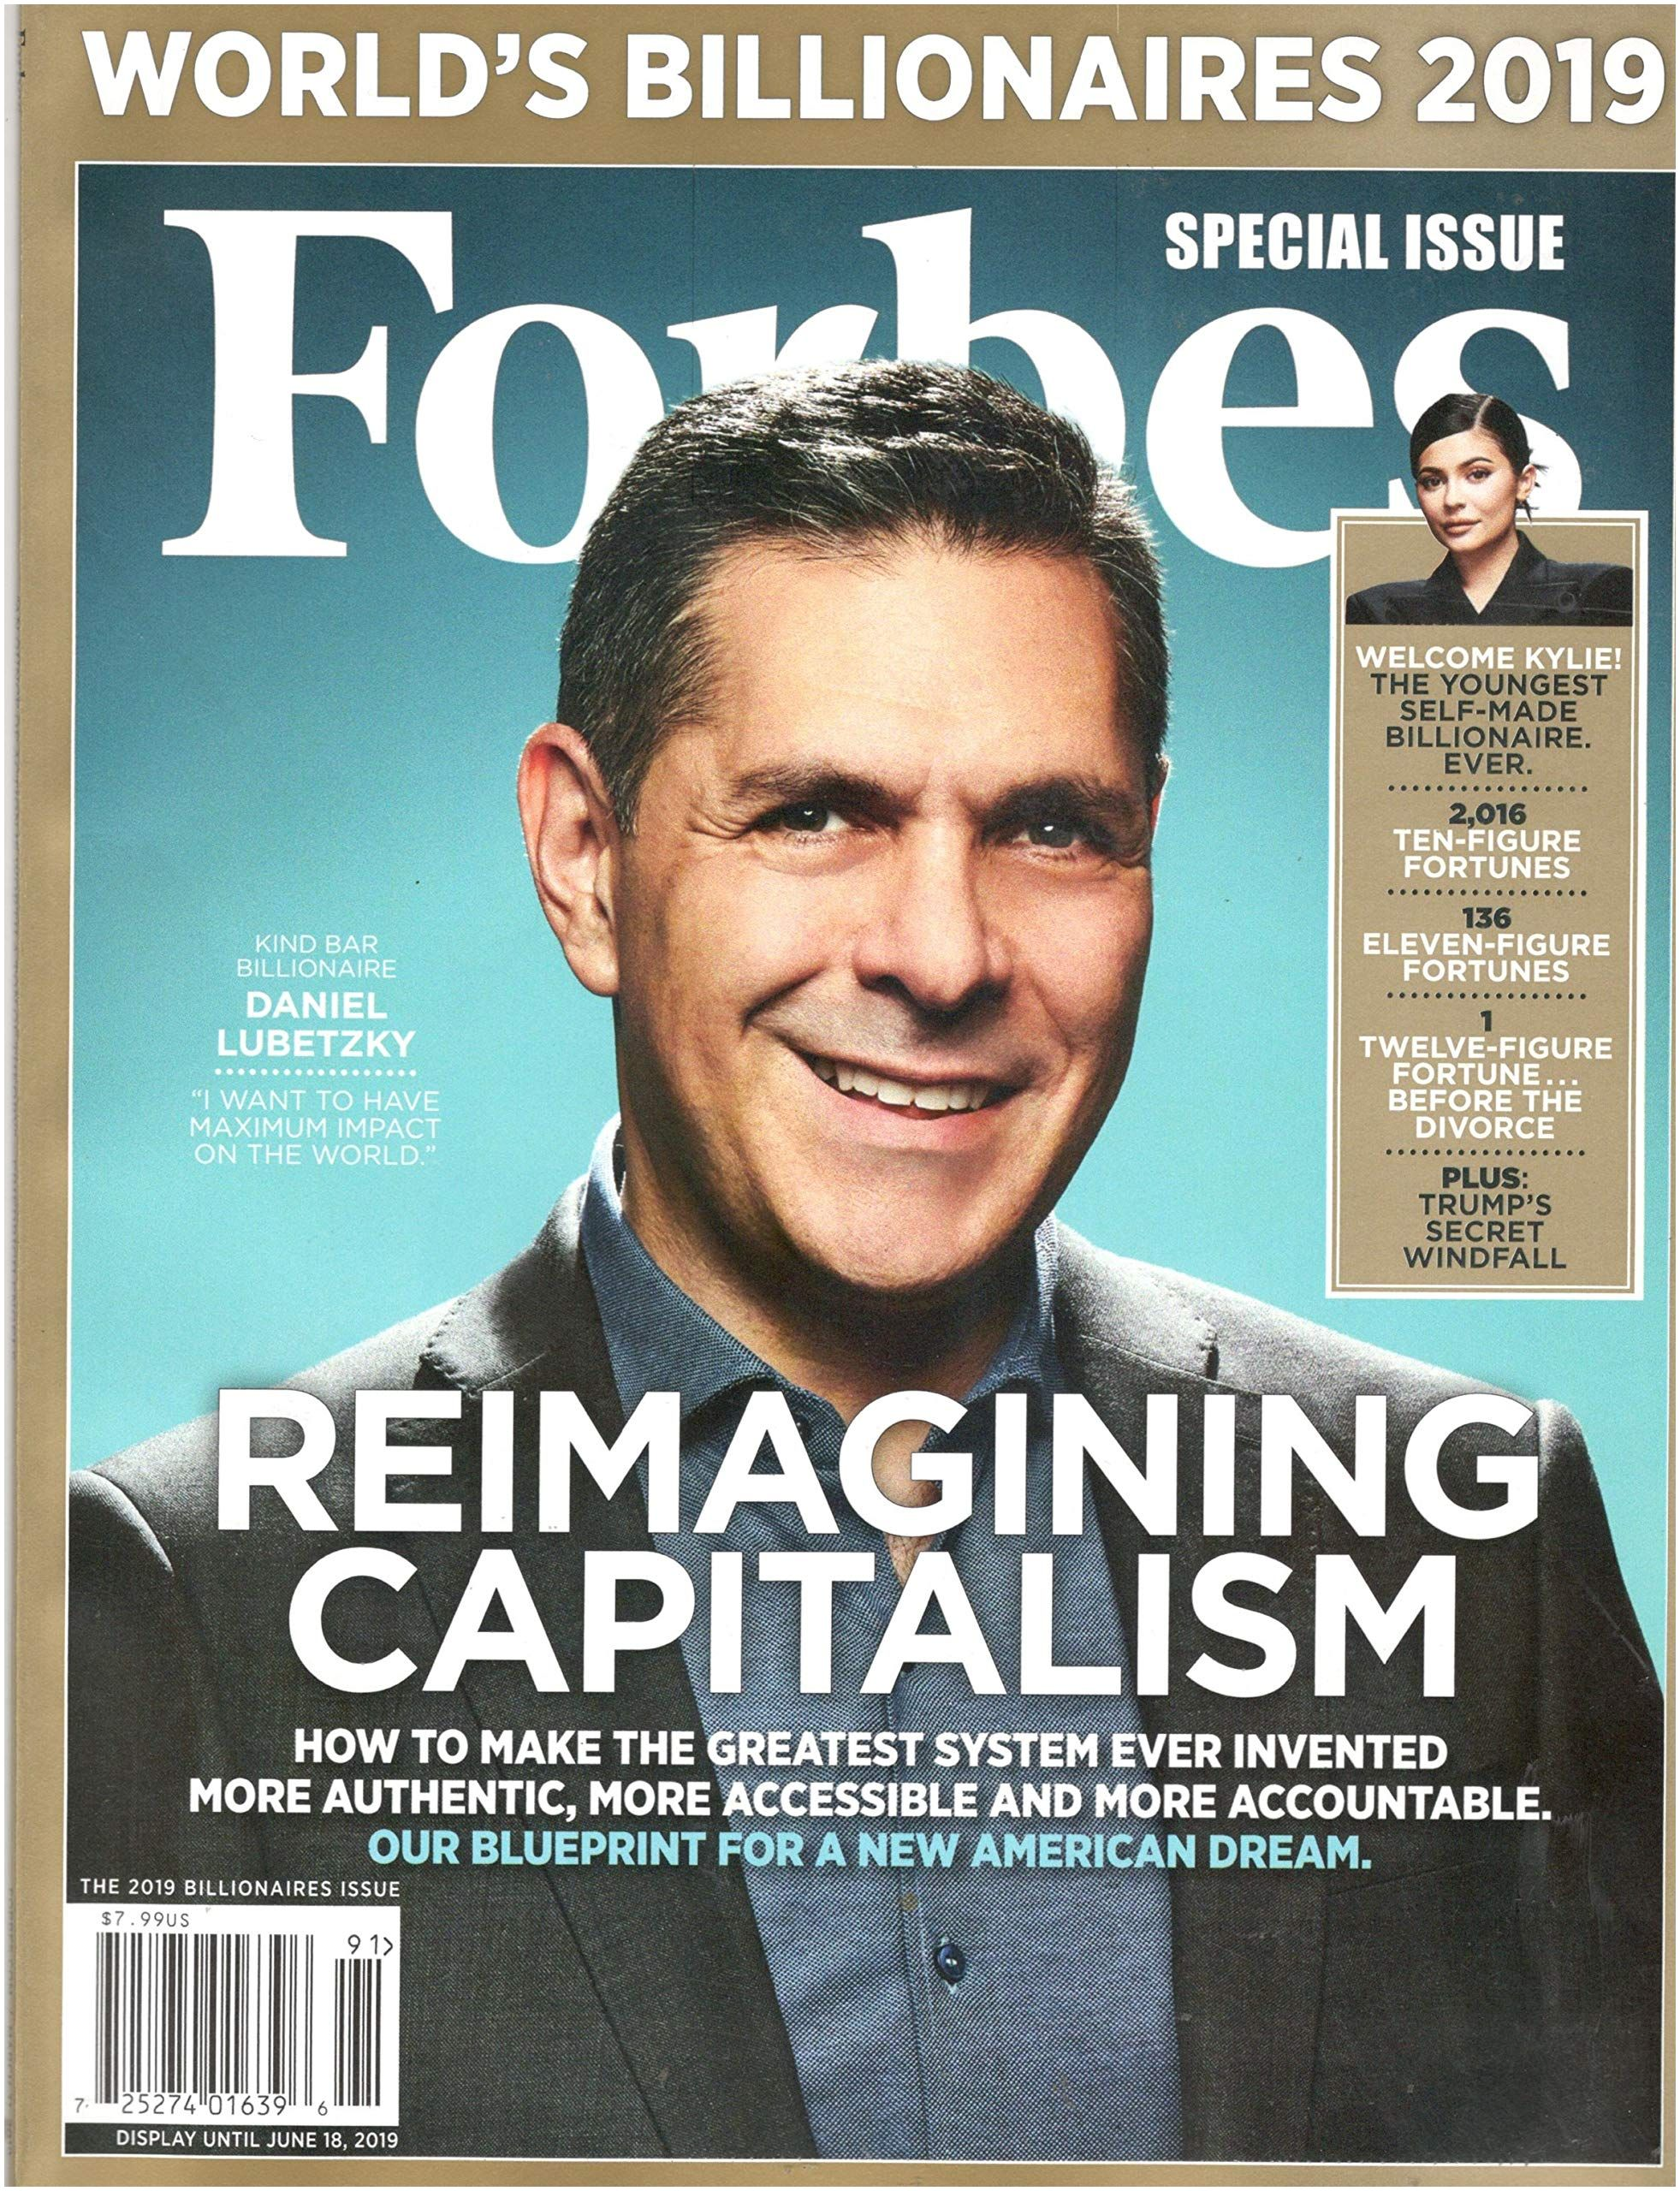 Forbes Magazine March 31 2019 World s Billionaires 2019 Special Issue Single Issue Magazine – 2019